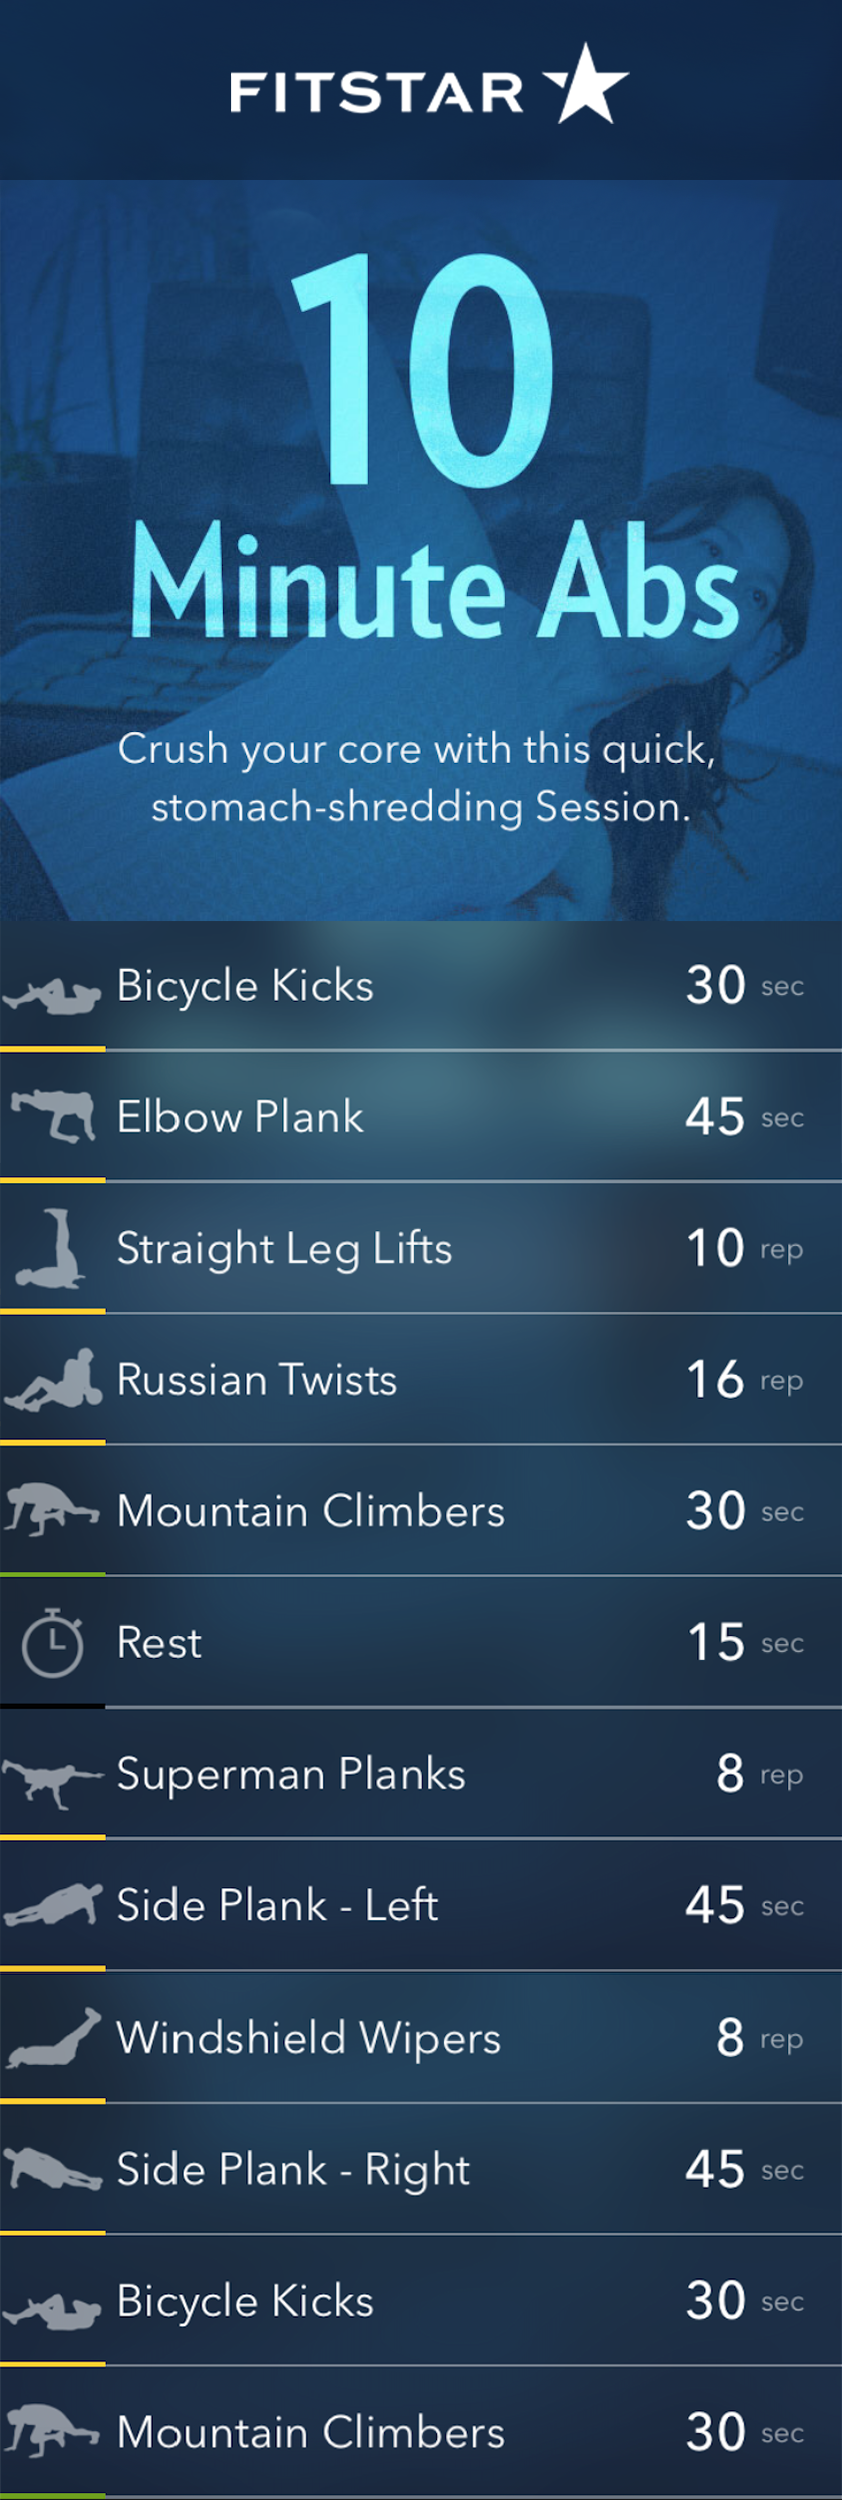 A 10 Minute Ab Workout from Fitstar to Rock Your Core #coreworkouts